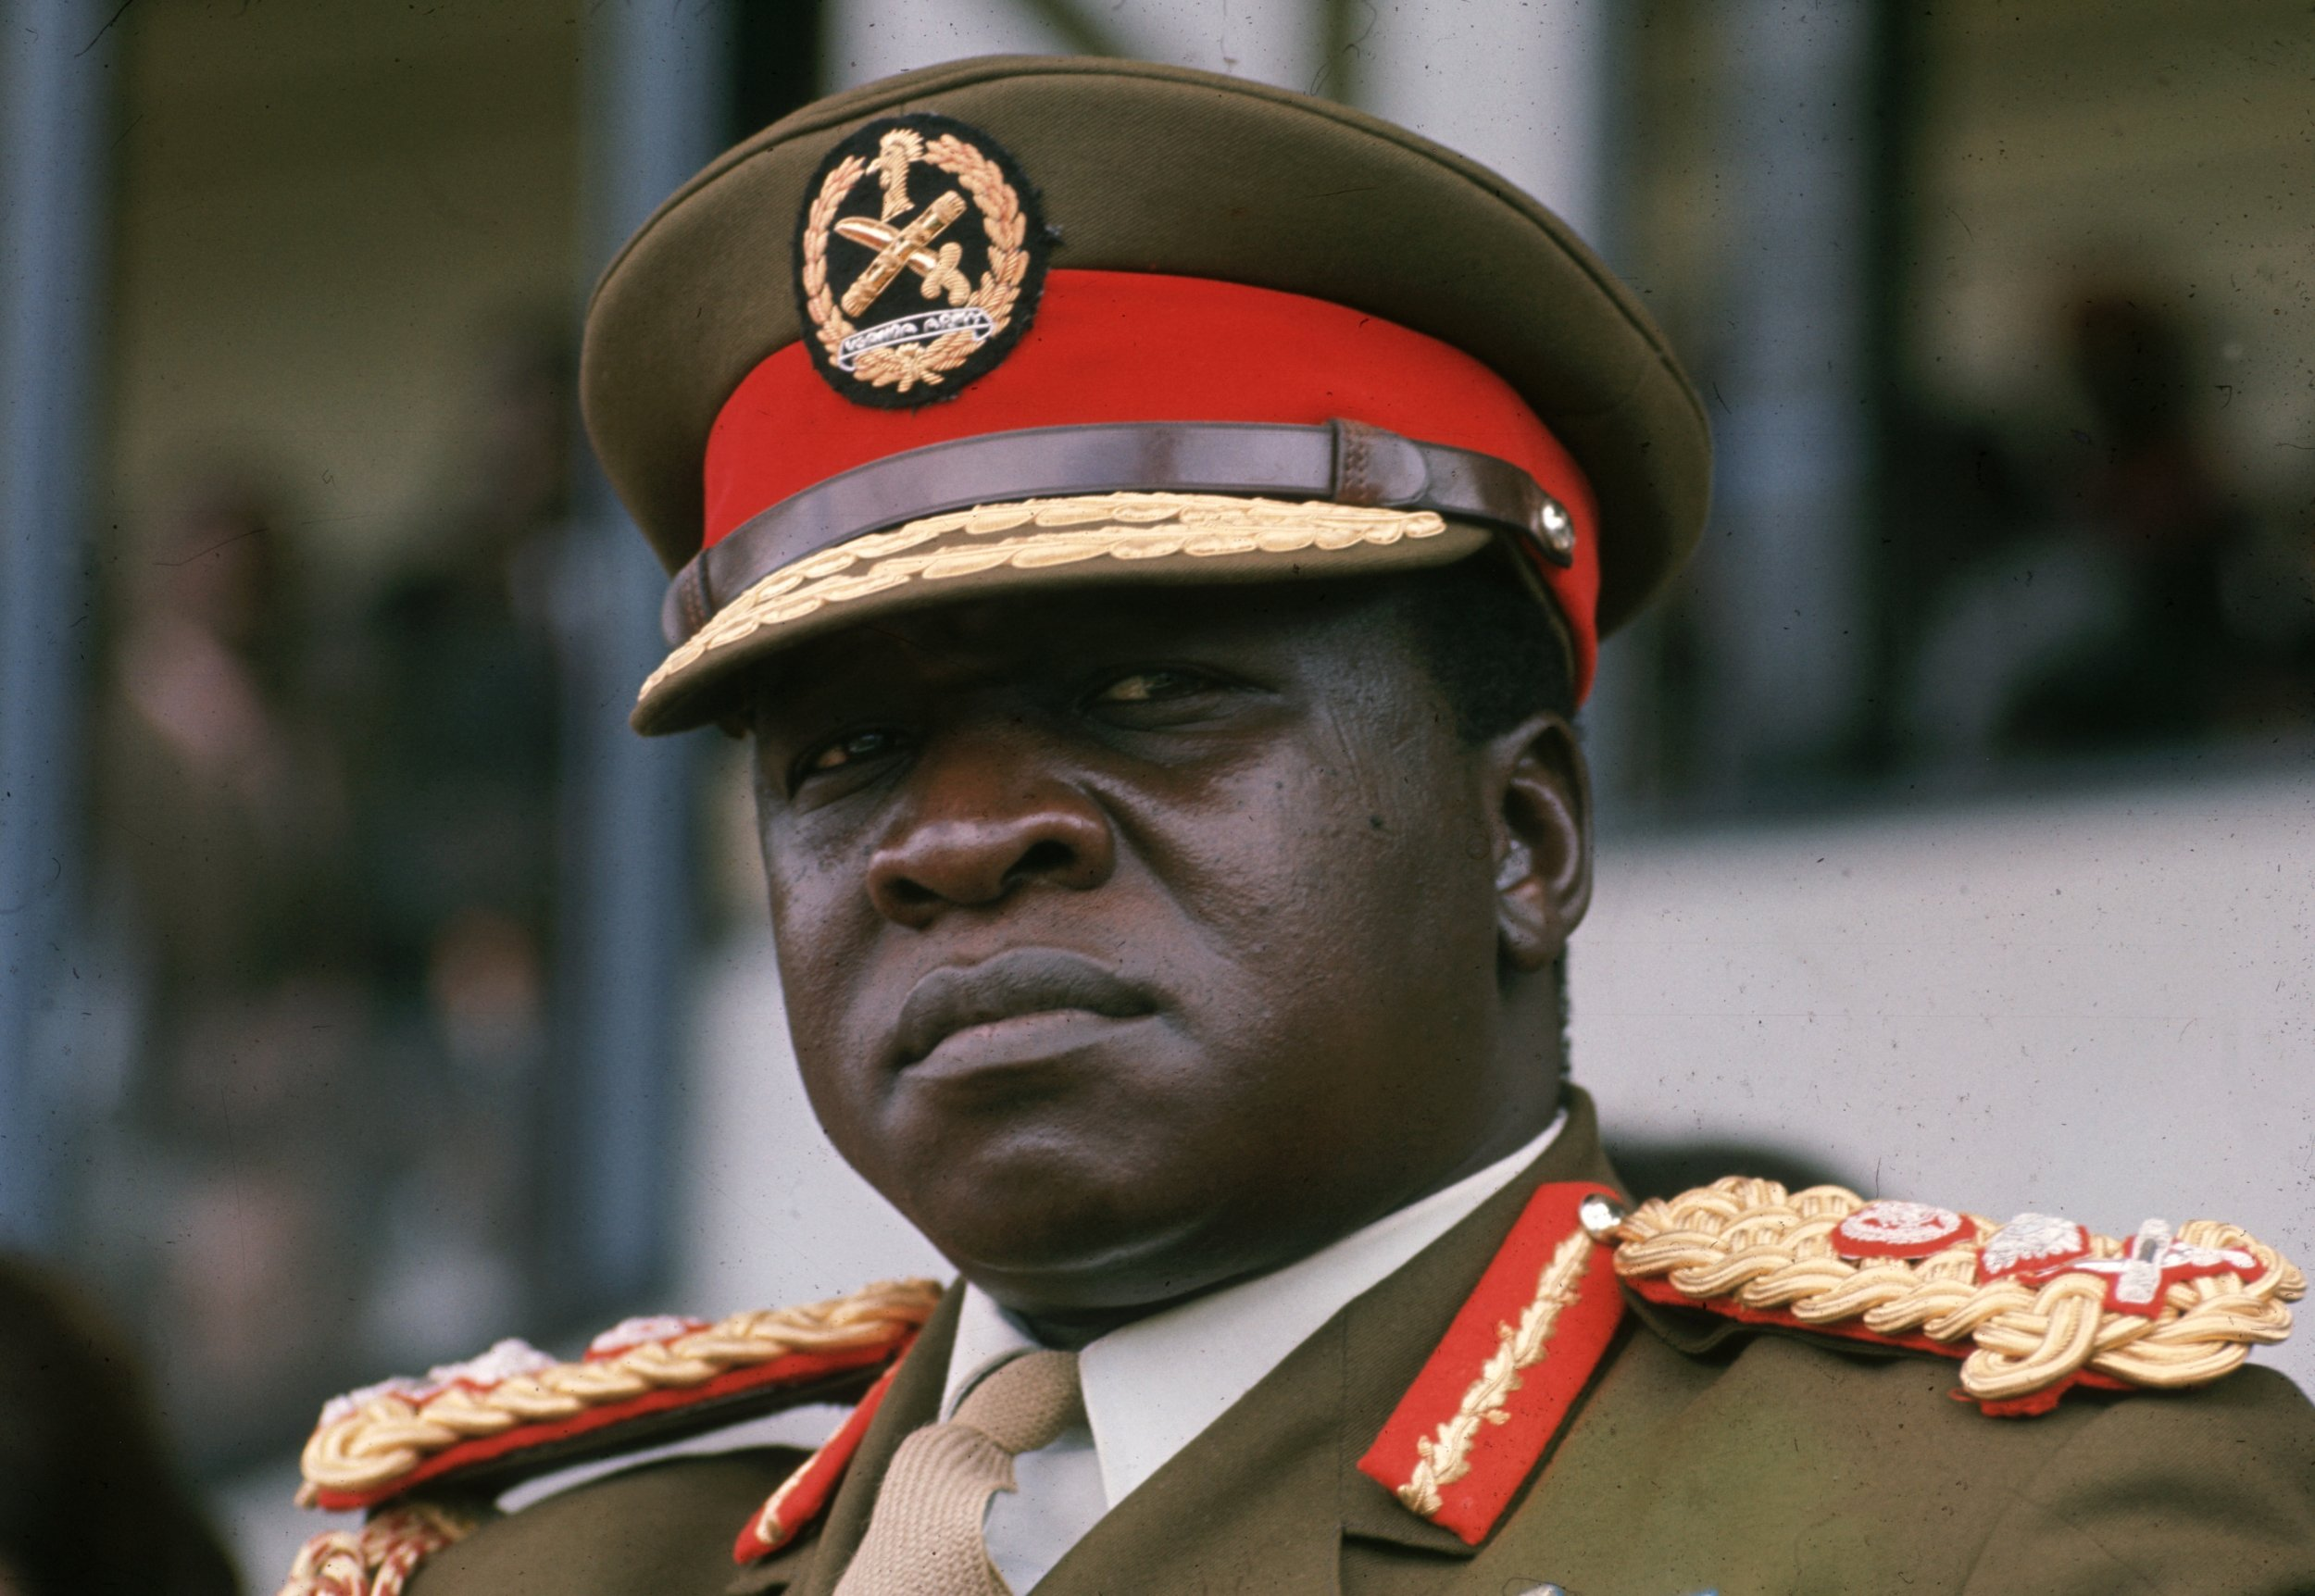 idi amin From wikipedia, the free encyclopedia idi amin dada (c 1925 - 16 august 2003) was a military leader and president of uganda from 1971 to 1979 amin joined the british colonial regiment, the king's african rifles, in 1946, and eventually held the rank of major general and commander of the ugandan army before taking power in the military coup of january 1971, deposing milton obote.